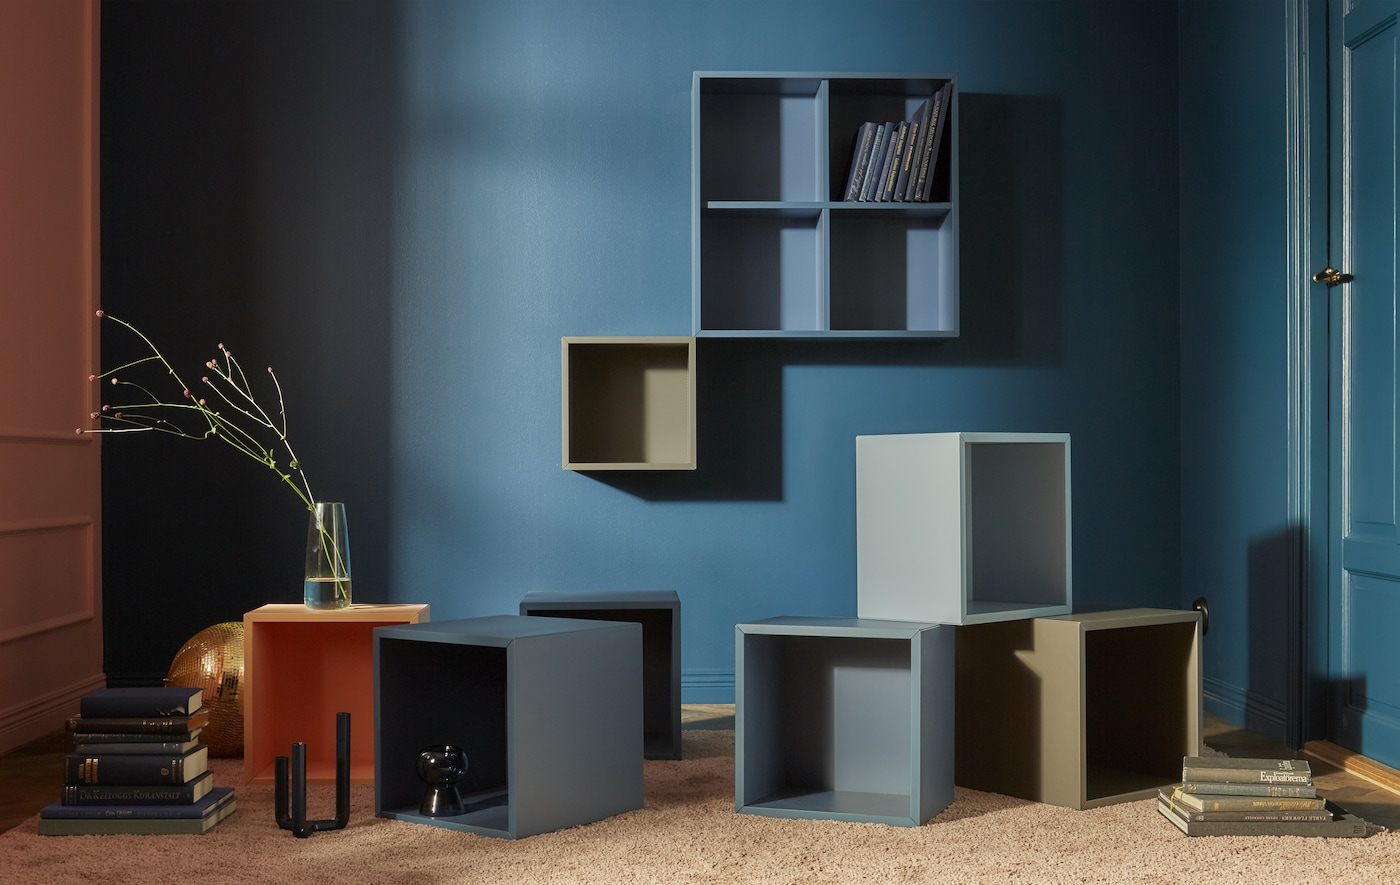 A collection of EKET open cabinets mounted to a dark blue wall and strewn across the floor in blue, brown, and grey colours.